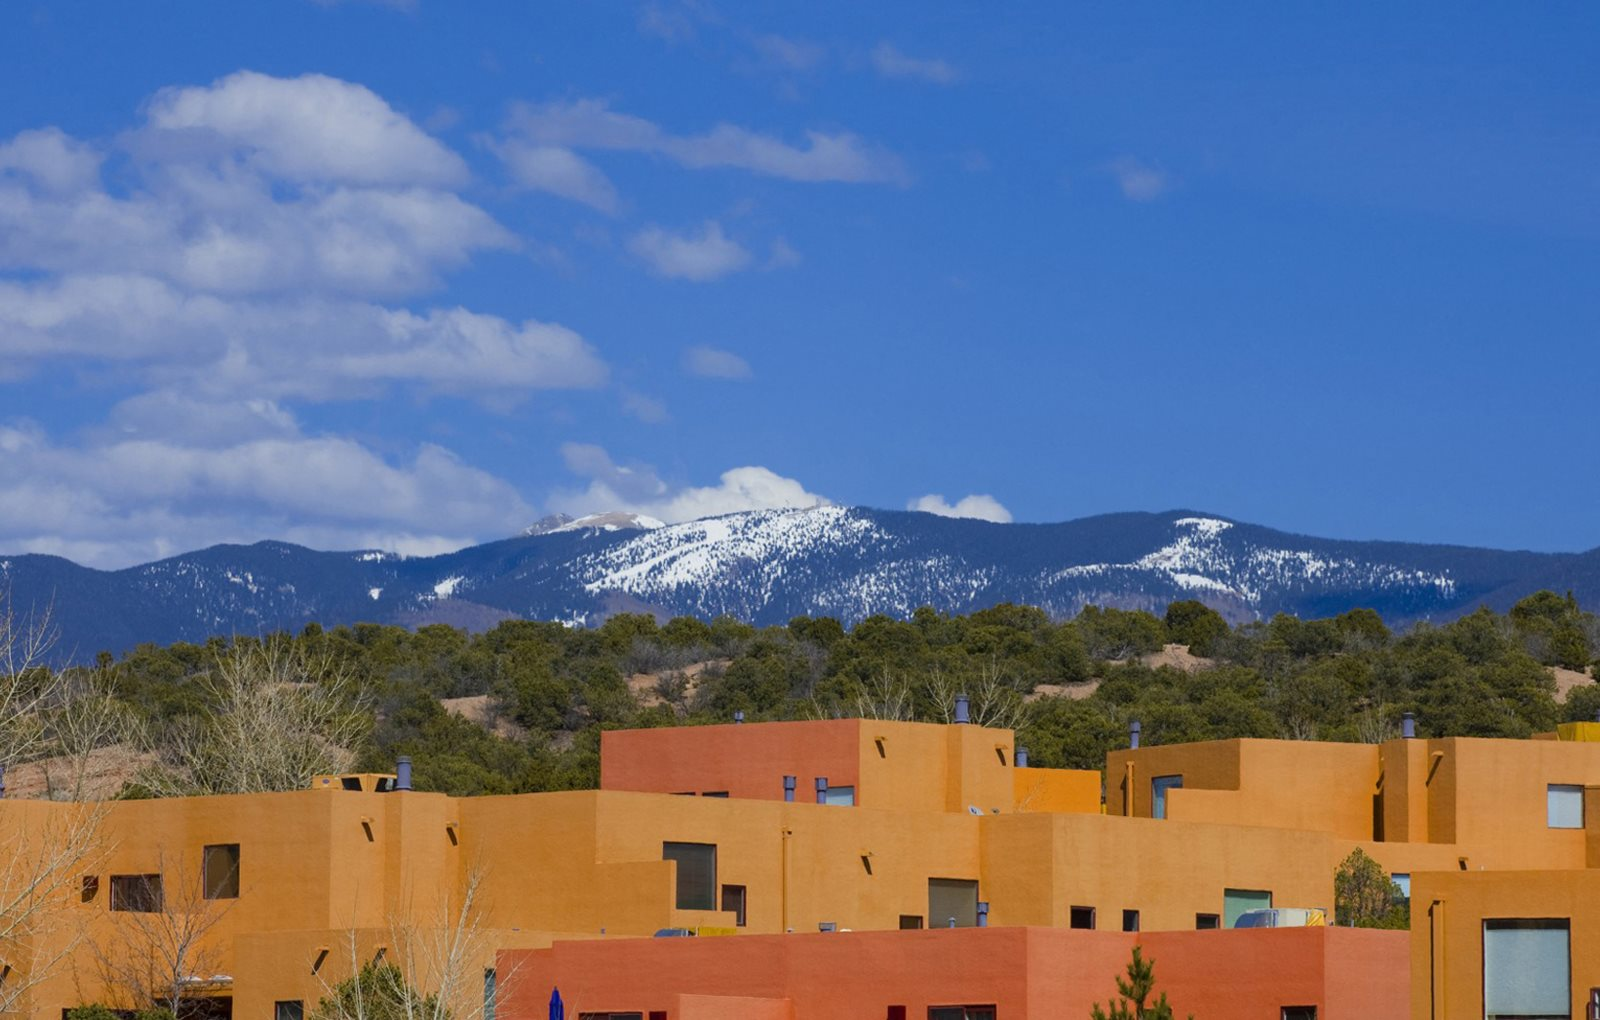 Santa Fe background 4